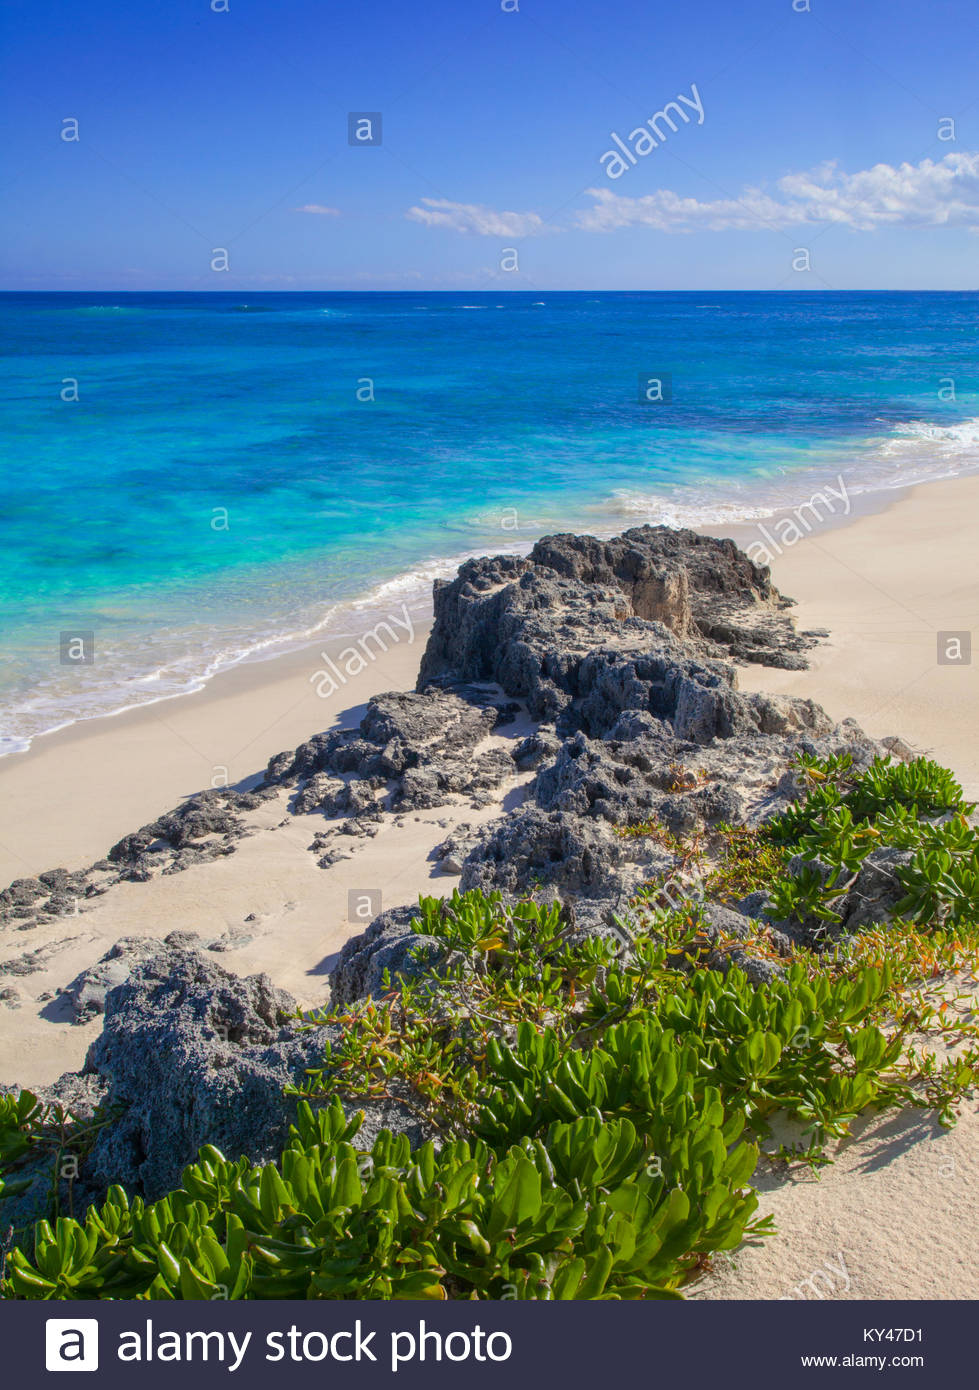 6204-1035  Copyright:  George H.H. Huey   Beach at Elbow Cay with seagrape (Scaevola sericea) Abacos, Bahamas. - Stock Image